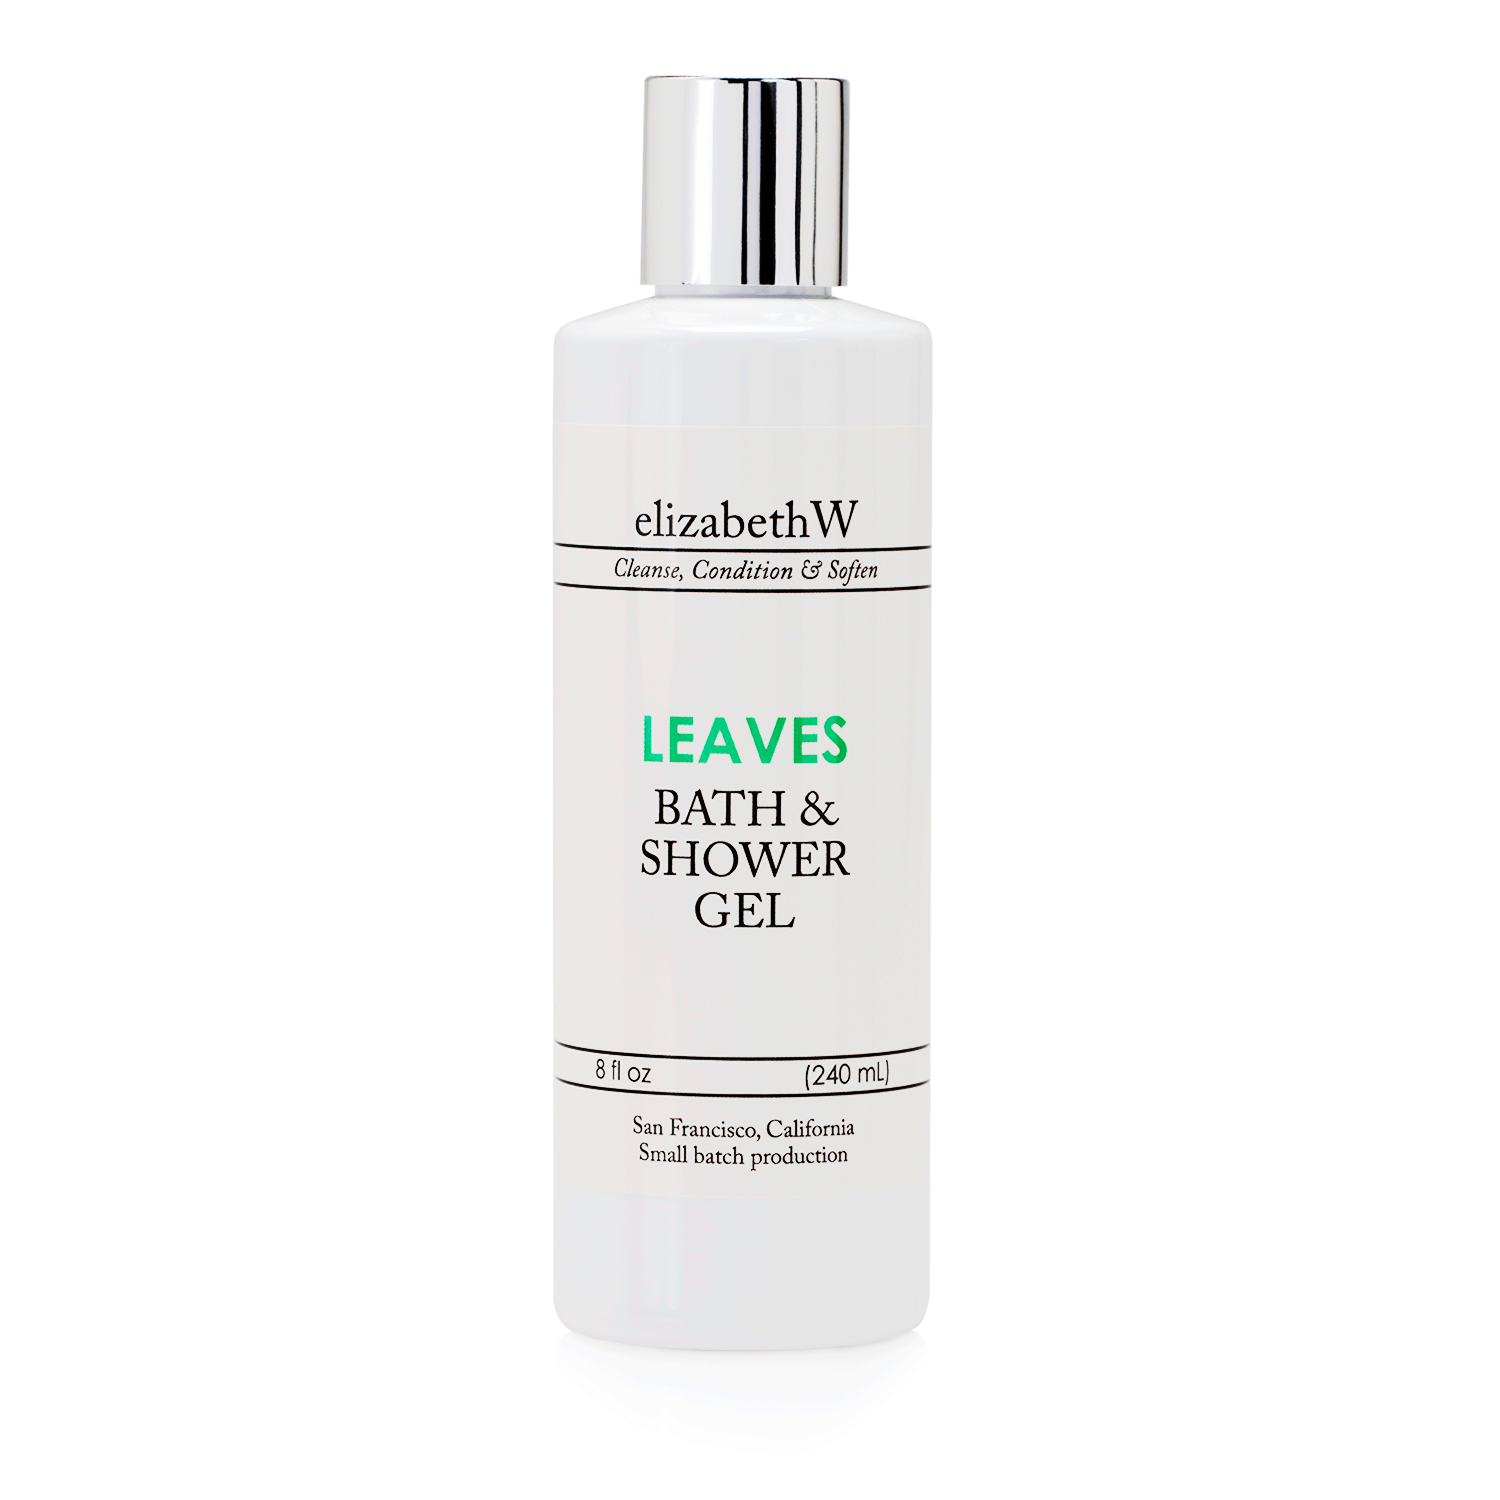 Leaves Bath & Shower Gel